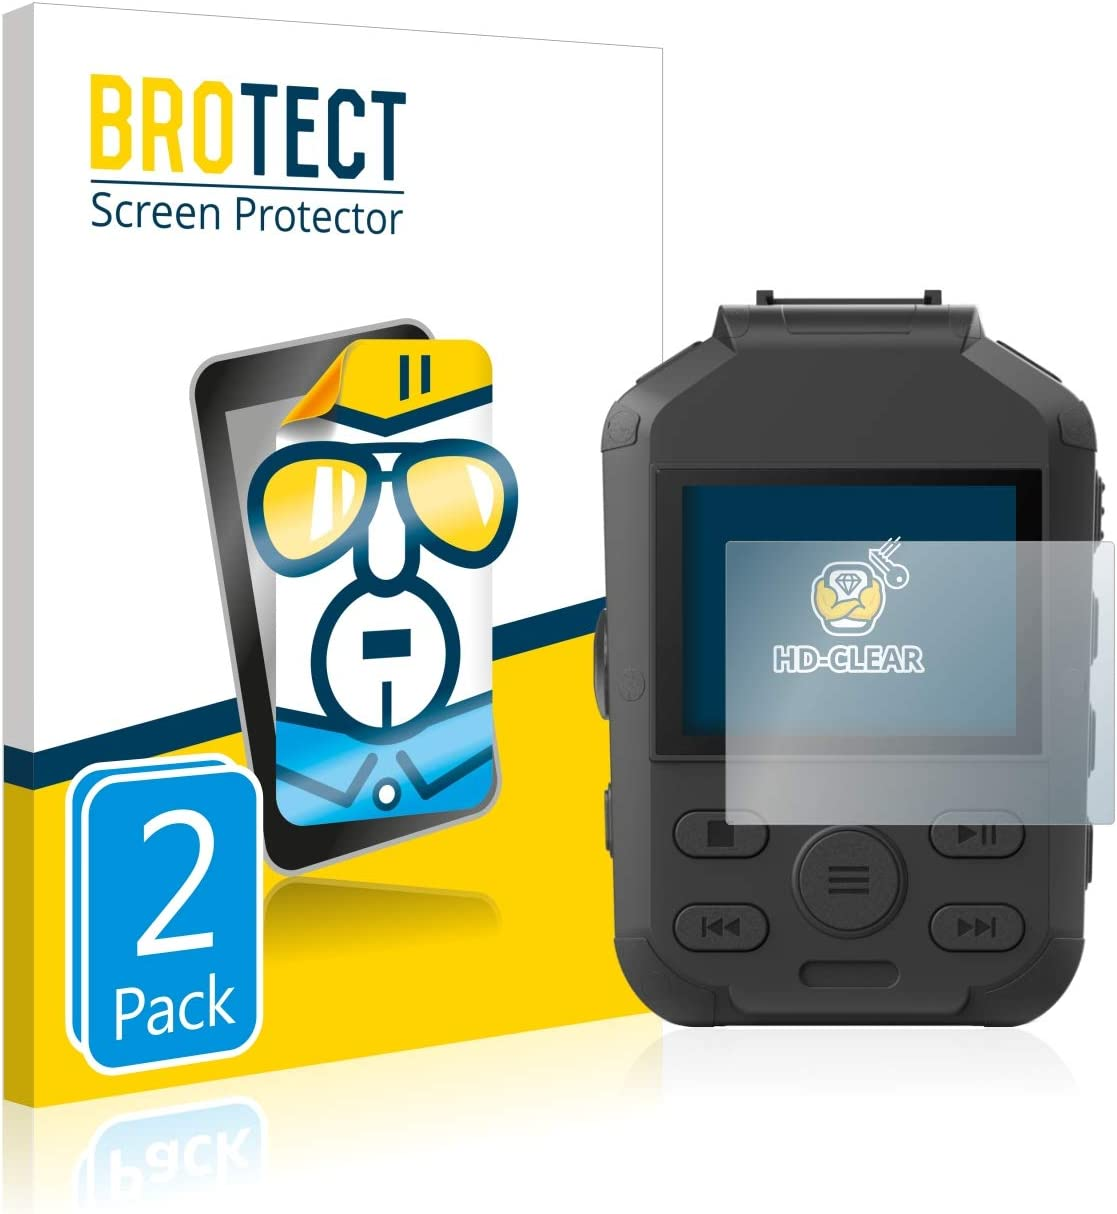 2X HD-Clear Screen Protector for Philips DVT3120 BROTECT Crystal-Clear Dirt-Repellent Hard-Coated